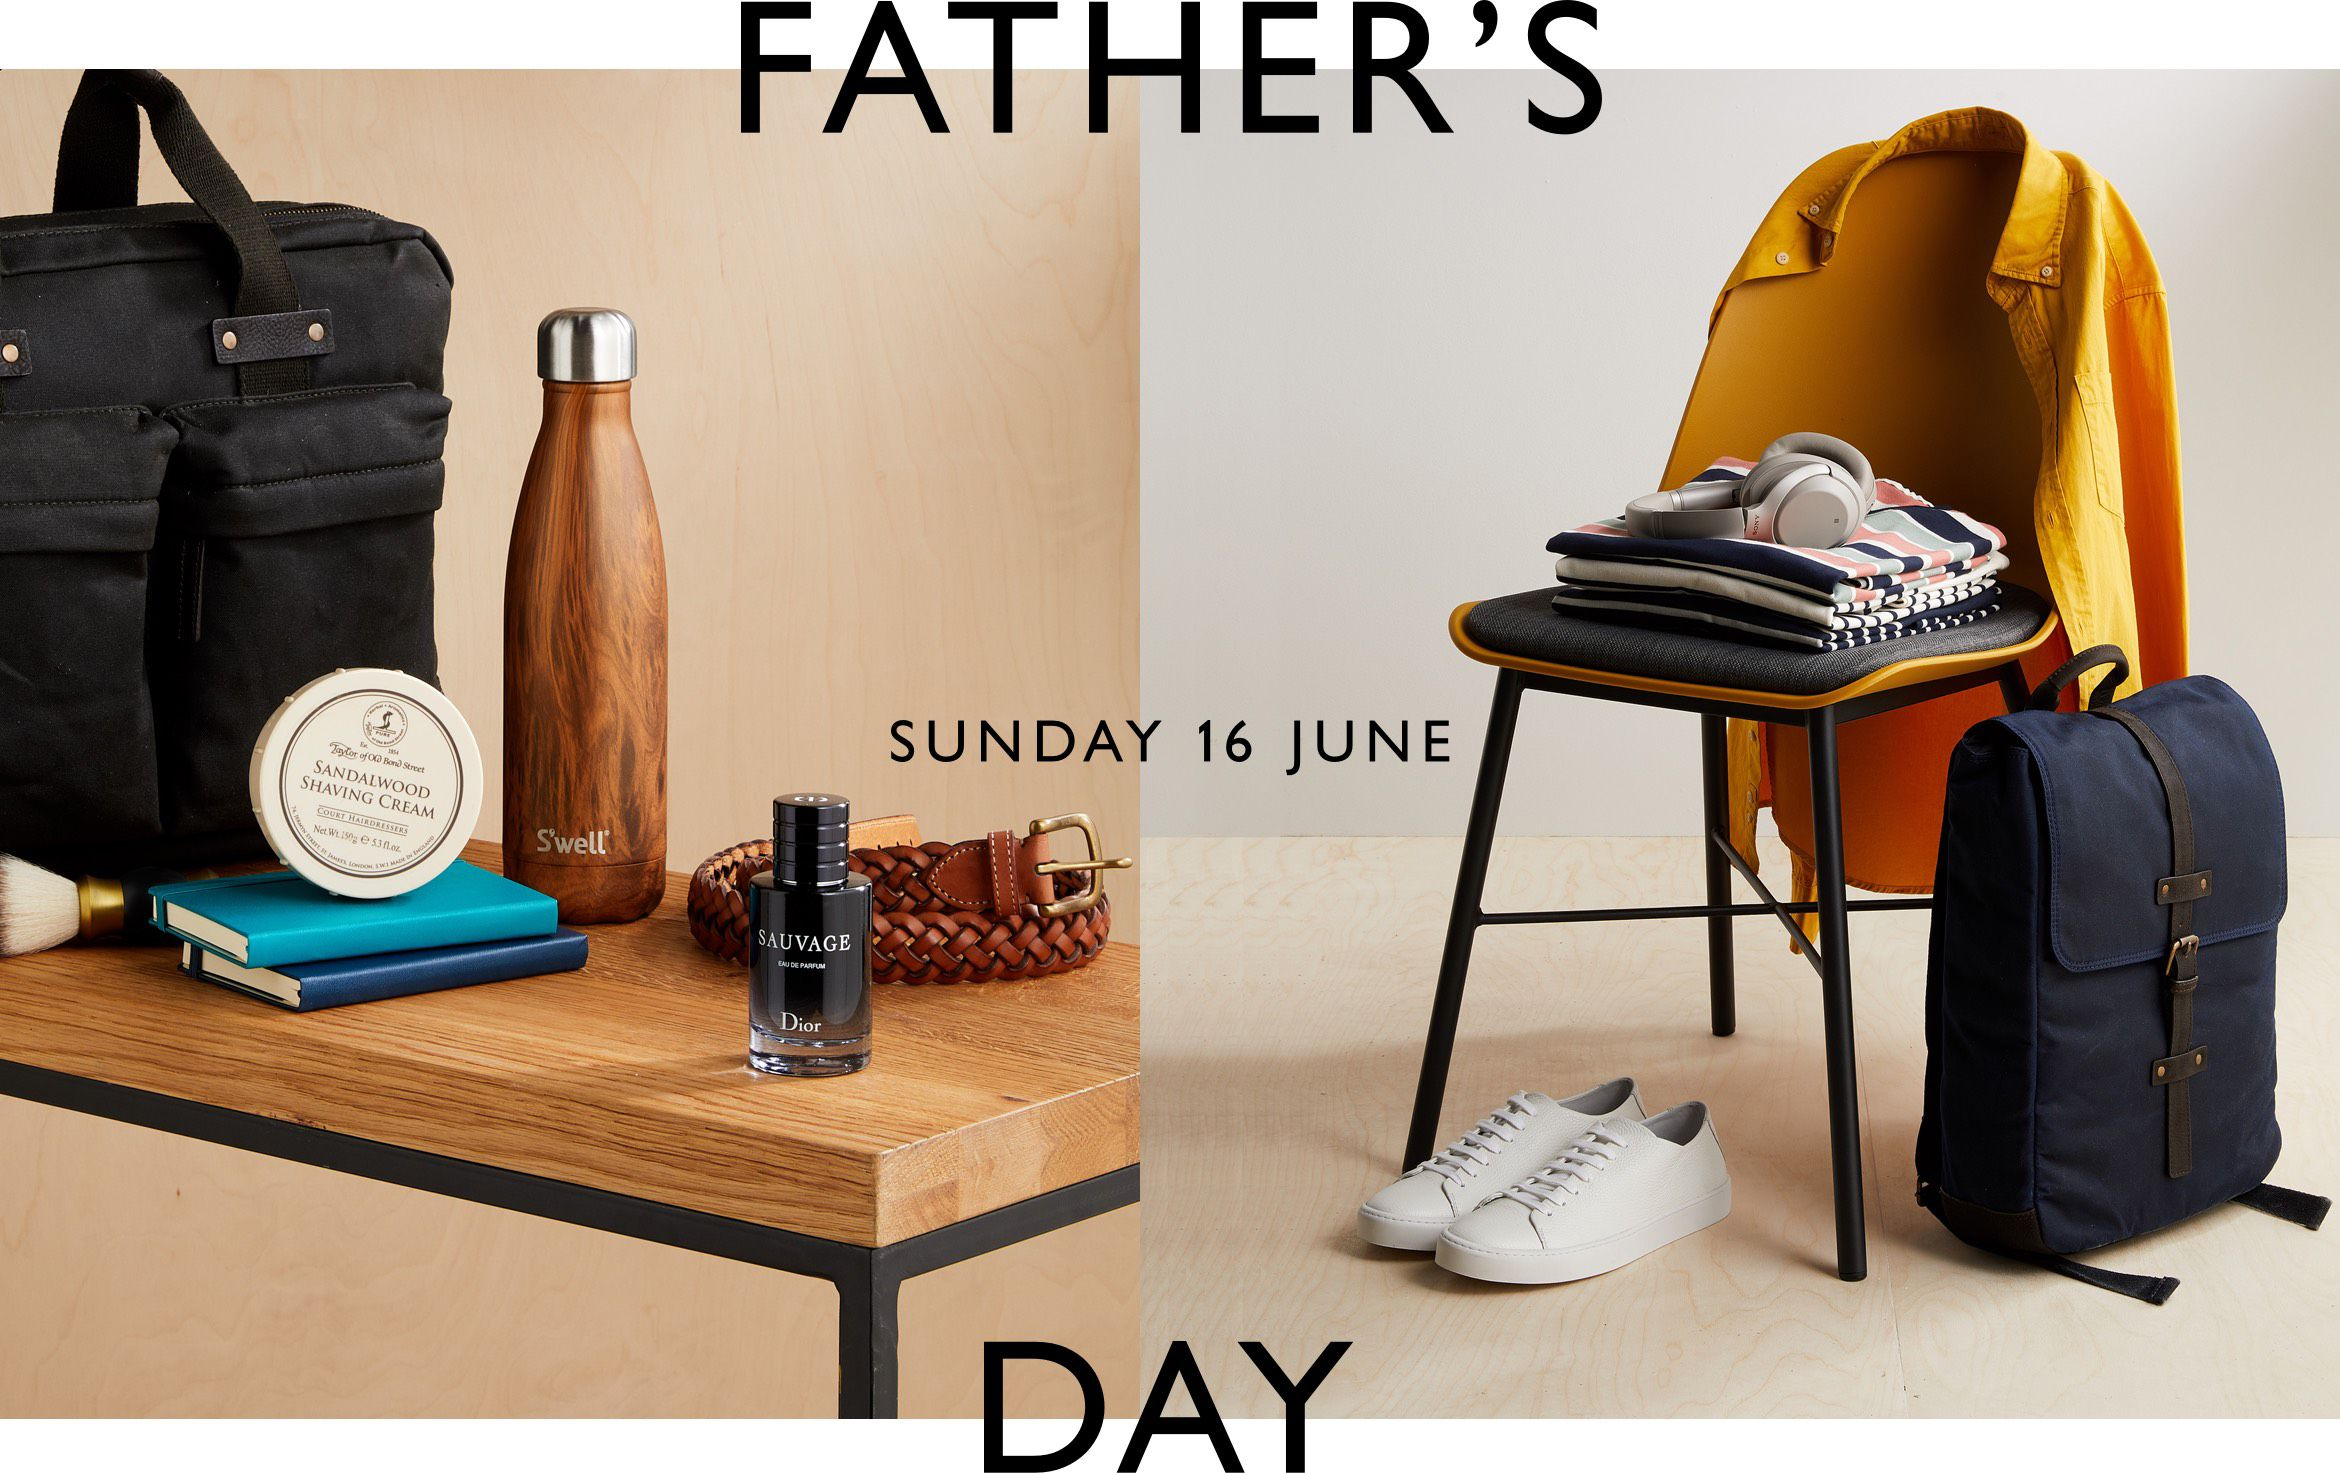 cedf5b8c7 Gifts for Father's Day | Presents for Dad | John Lewis